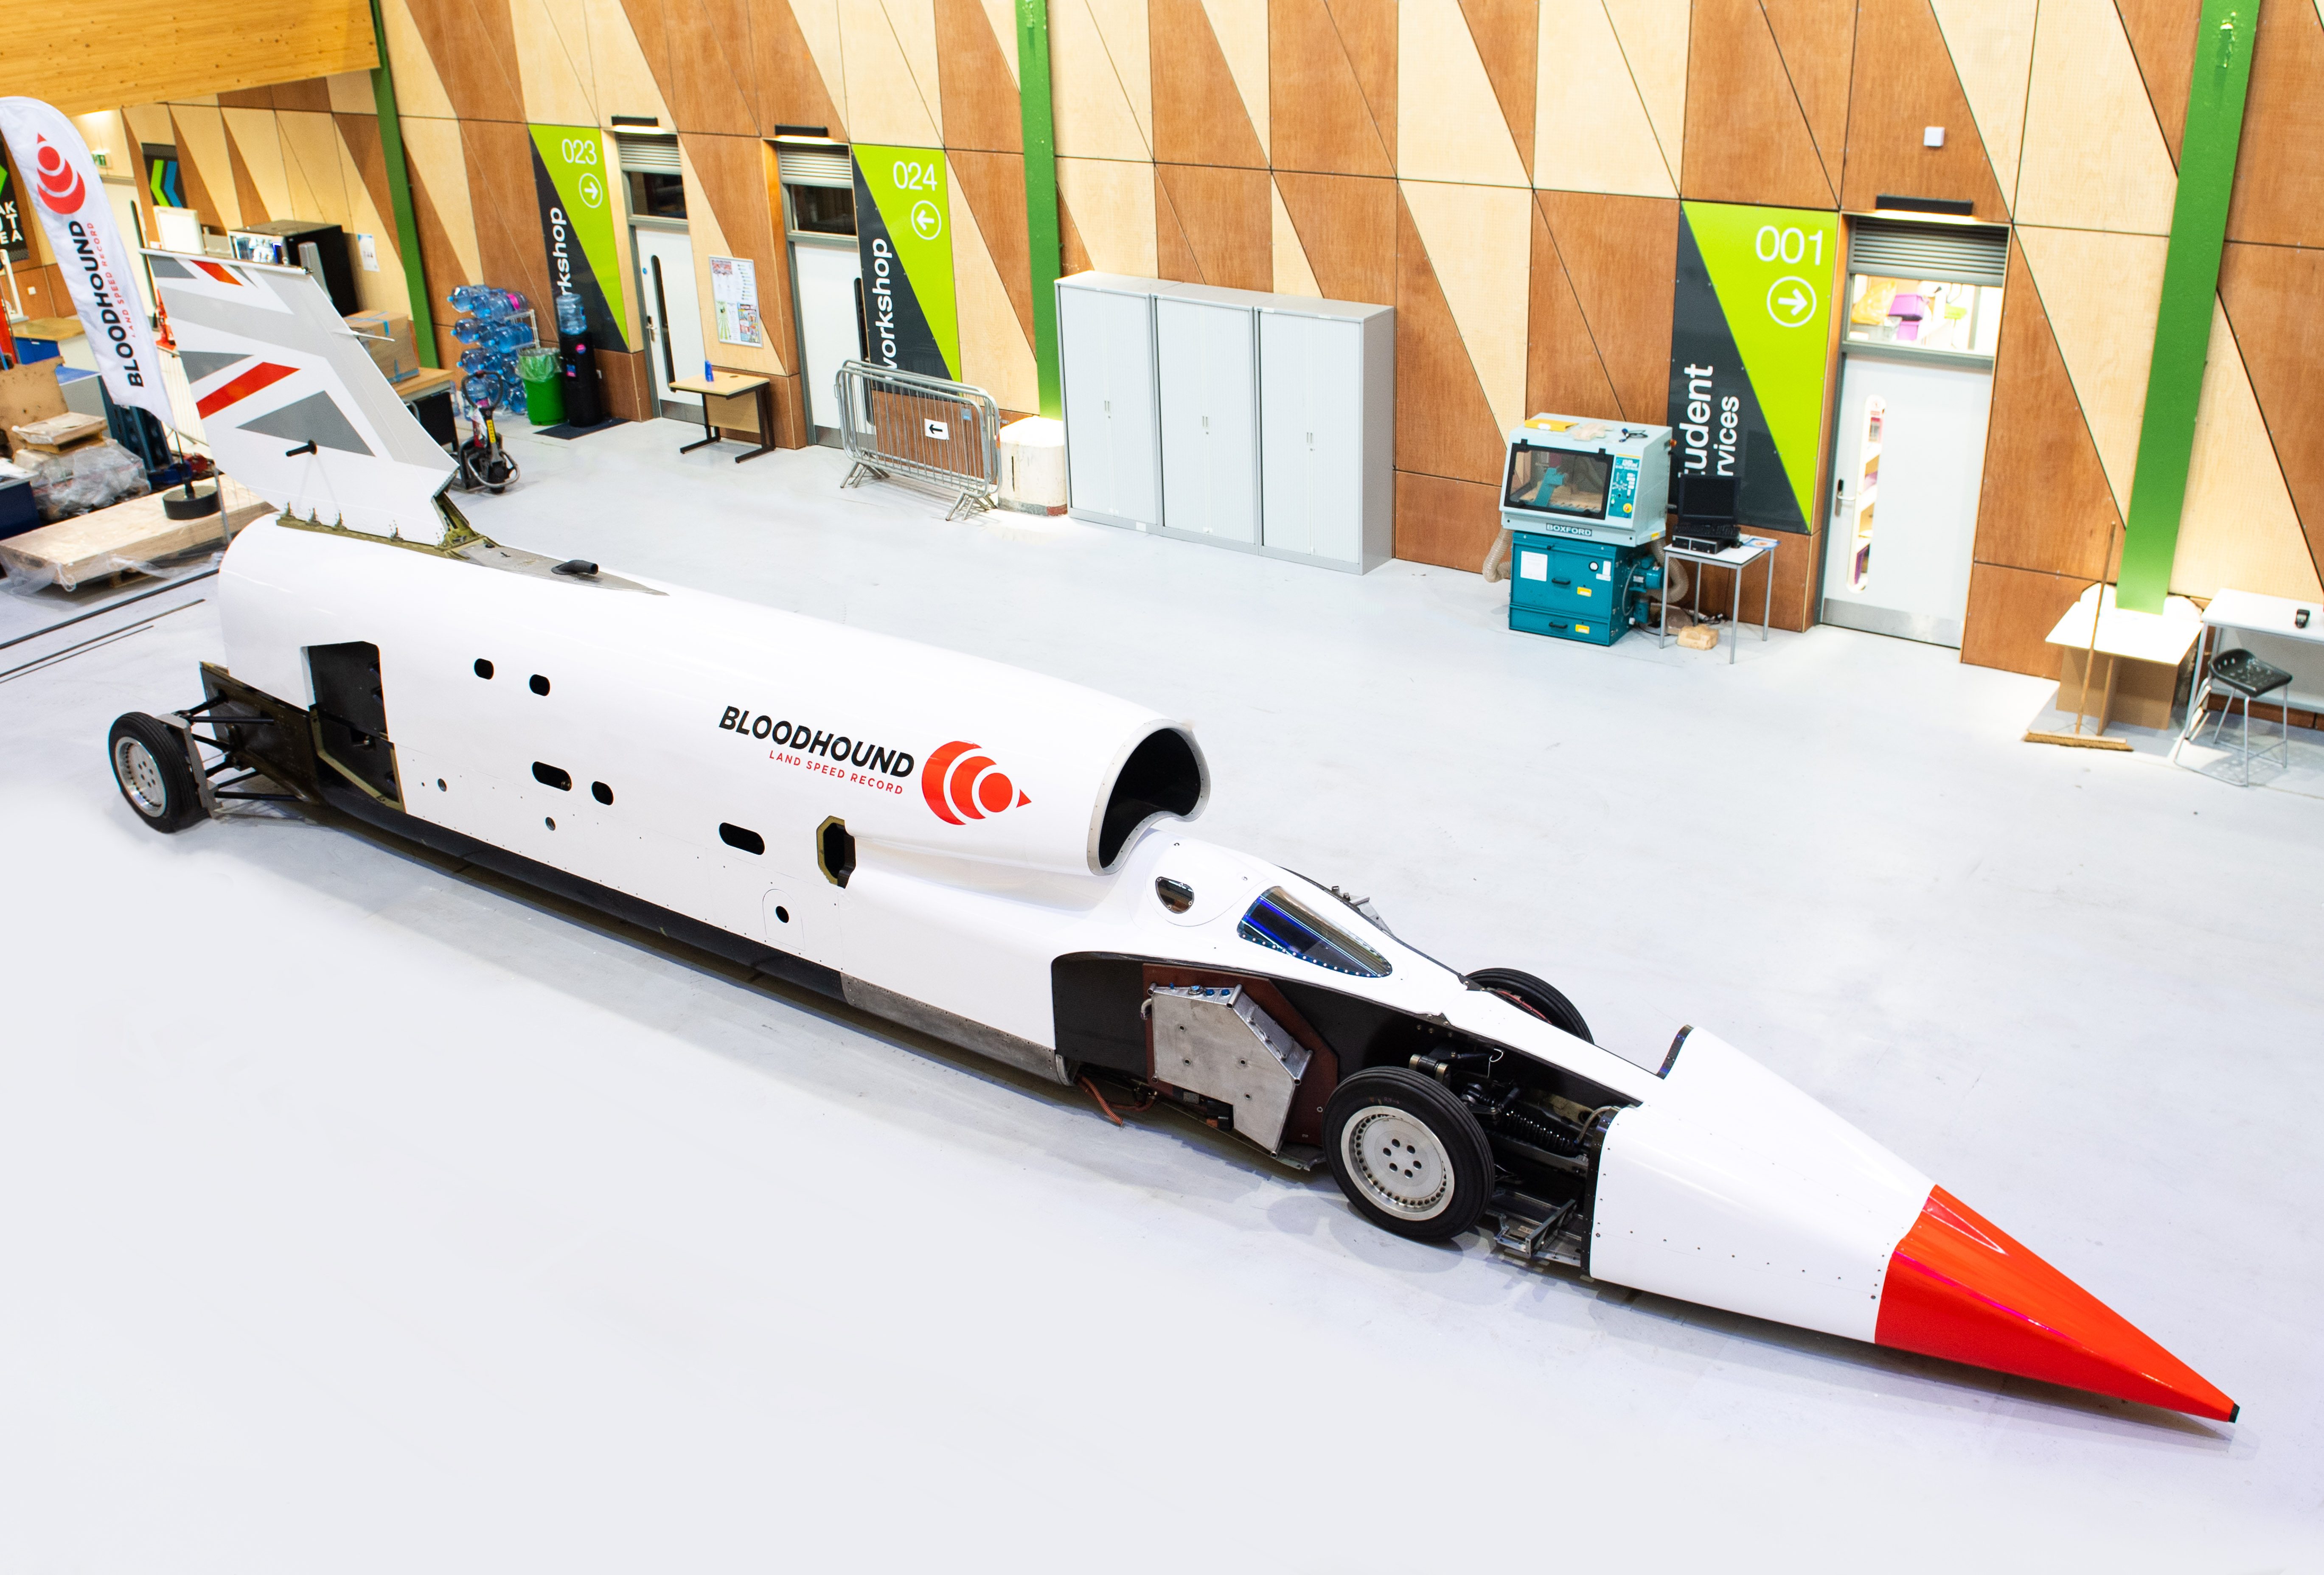 Bloodhound LSR, the 1,000mph car, starts high-speed tests in